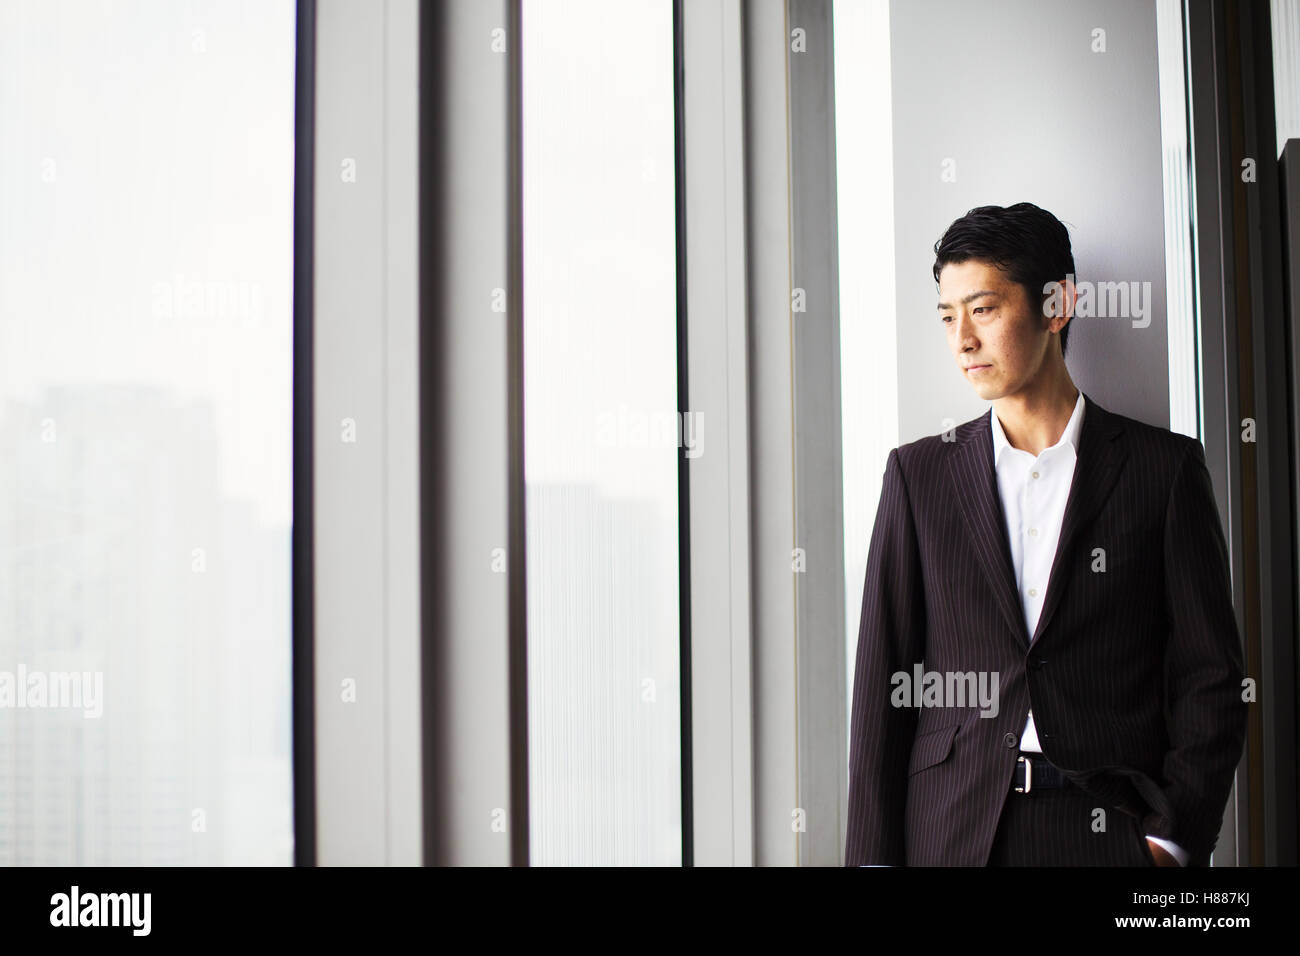 A businessman in the office, by a large window, looking over the city. - Stock Image